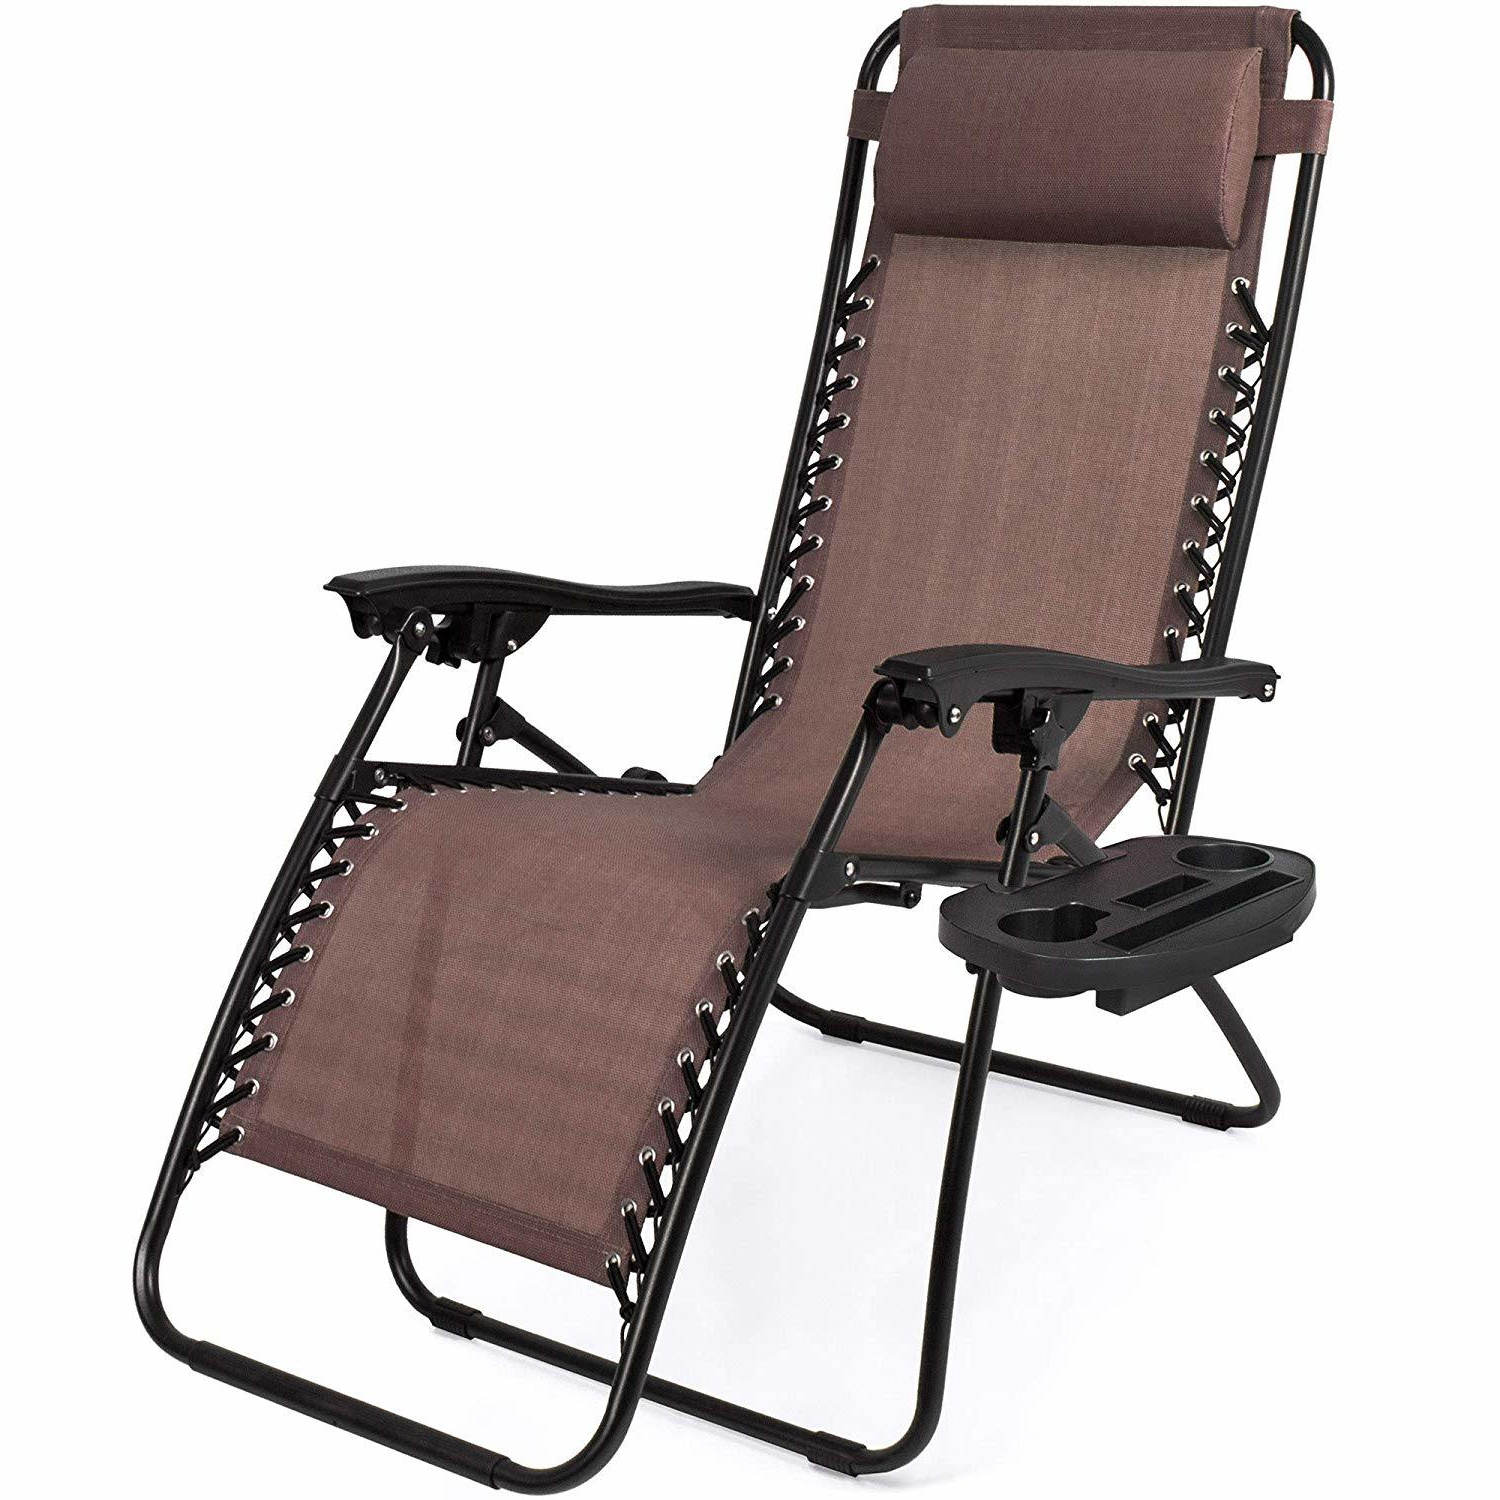 [%[Hot Item] Fmab Zero Gravity Folding Lounge Beach Chairs W/canopy Magazine Cup Holder With Regard To Most Current Folding Patio Lounge Beach Chairs With Canopy|Folding Patio Lounge Beach Chairs With Canopy Within Most Recent [Hot Item] Fmab Zero Gravity Folding Lounge Beach Chairs W/canopy Magazine Cup Holder|2019 Folding Patio Lounge Beach Chairs With Canopy Regarding [Hot Item] Fmab Zero Gravity Folding Lounge Beach Chairs W/canopy Magazine Cup Holder|Most Popular [Hot Item] Fmab Zero Gravity Folding Lounge Beach Chairs W/canopy Magazine Cup Holder Throughout Folding Patio Lounge Beach Chairs With Canopy%] (View 6 of 25)